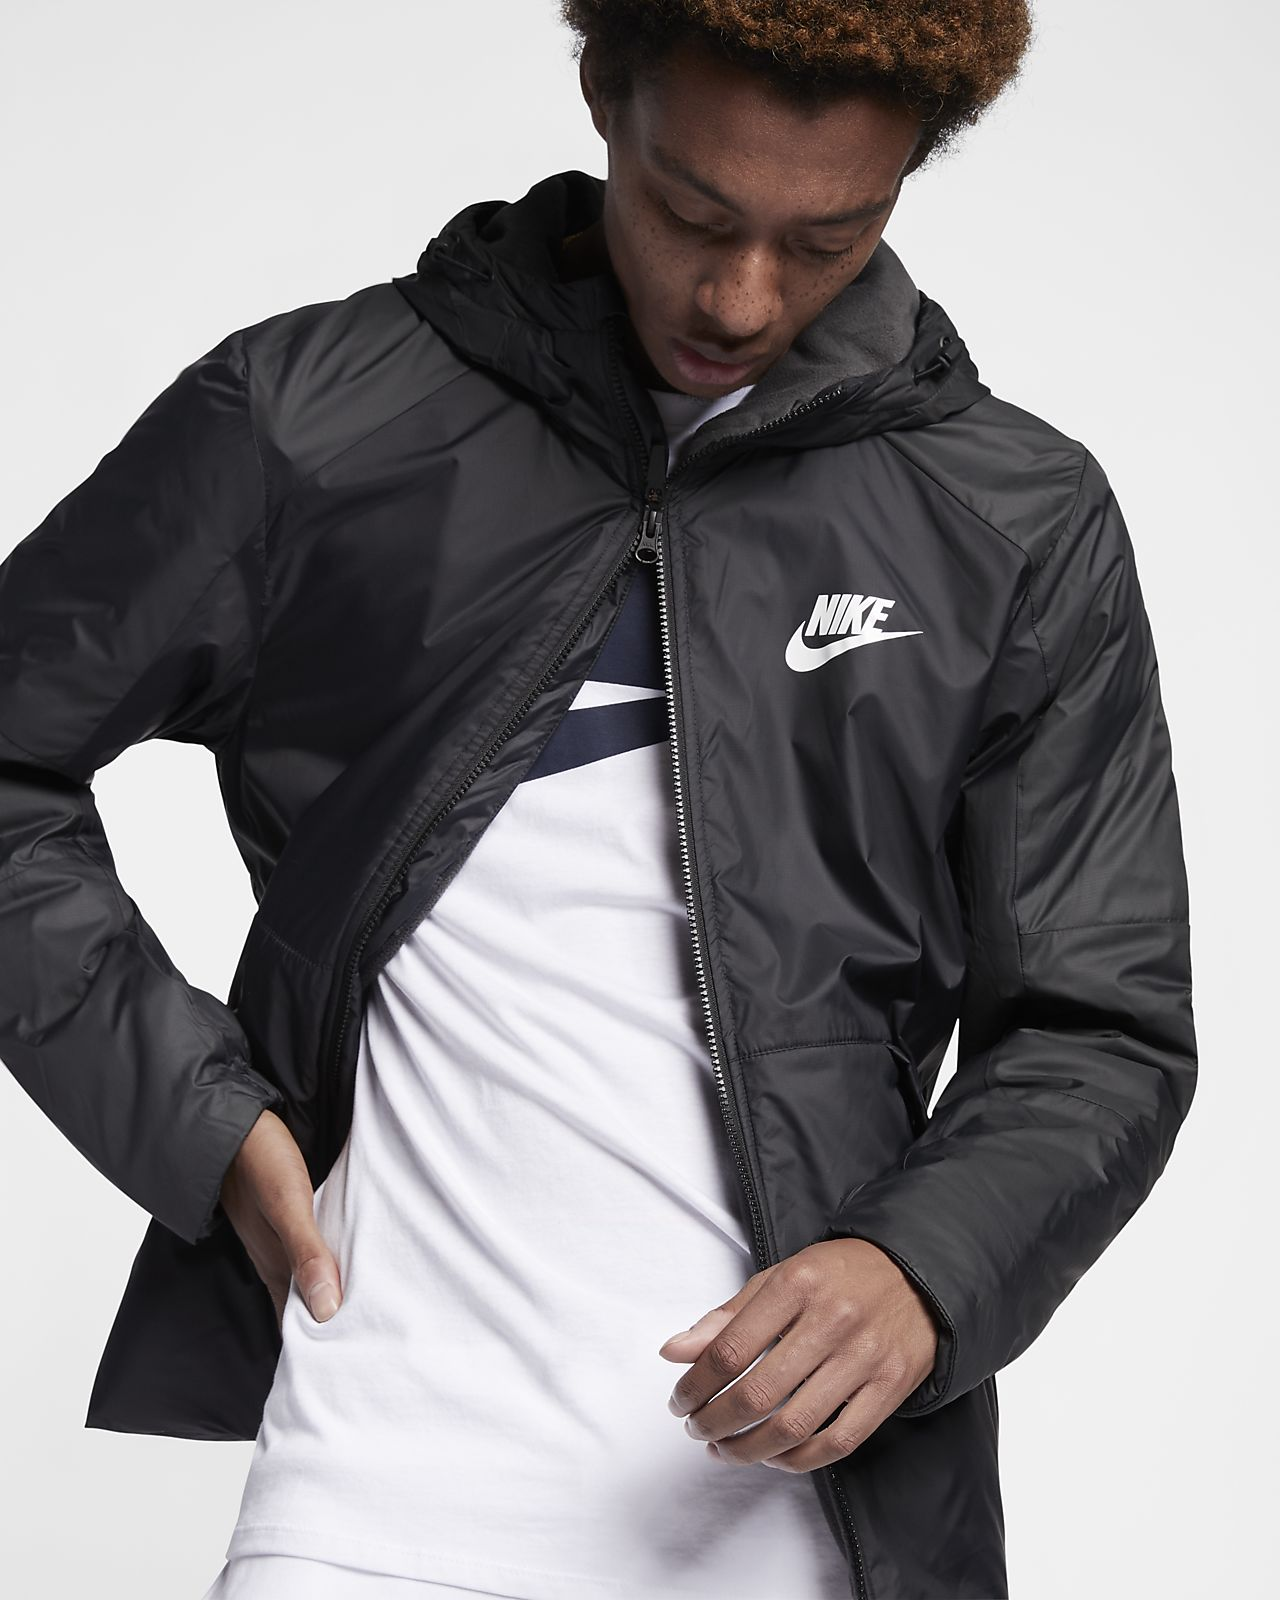 Nike Sportswear Synthetic Fill fleecehettejakke til herre